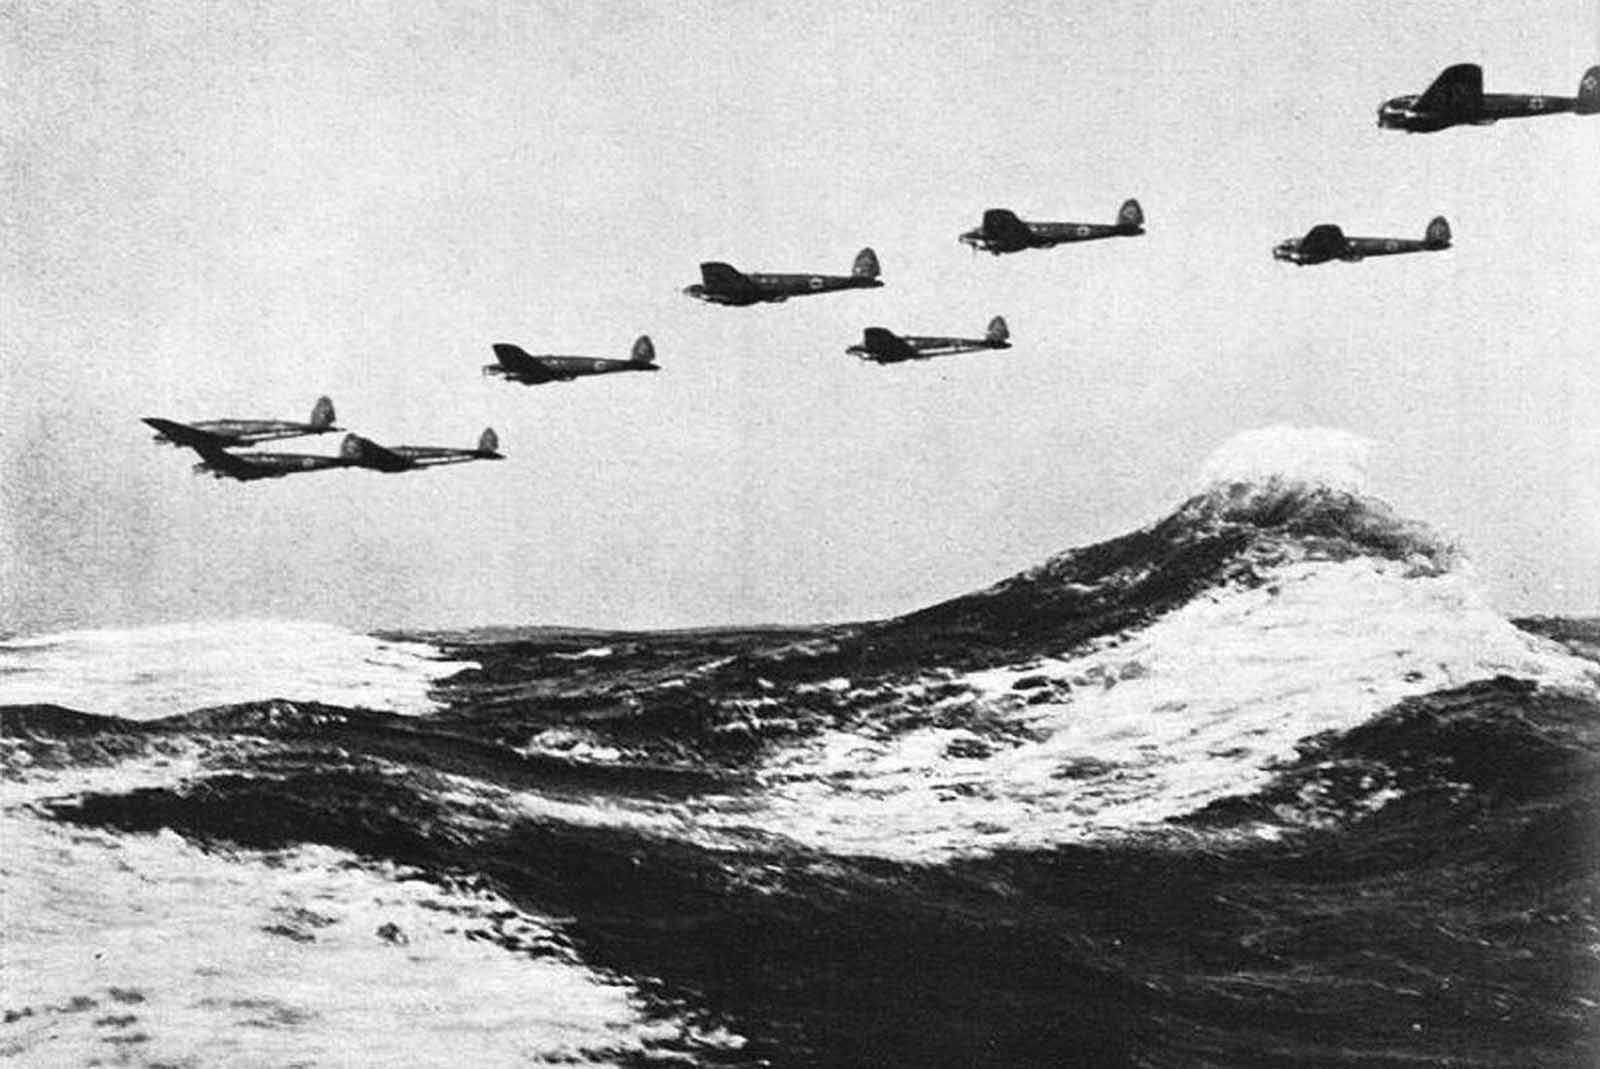 A formation of low-flying German Heinkel He 111 bombers flies over the waves of the English Channel in 1940.